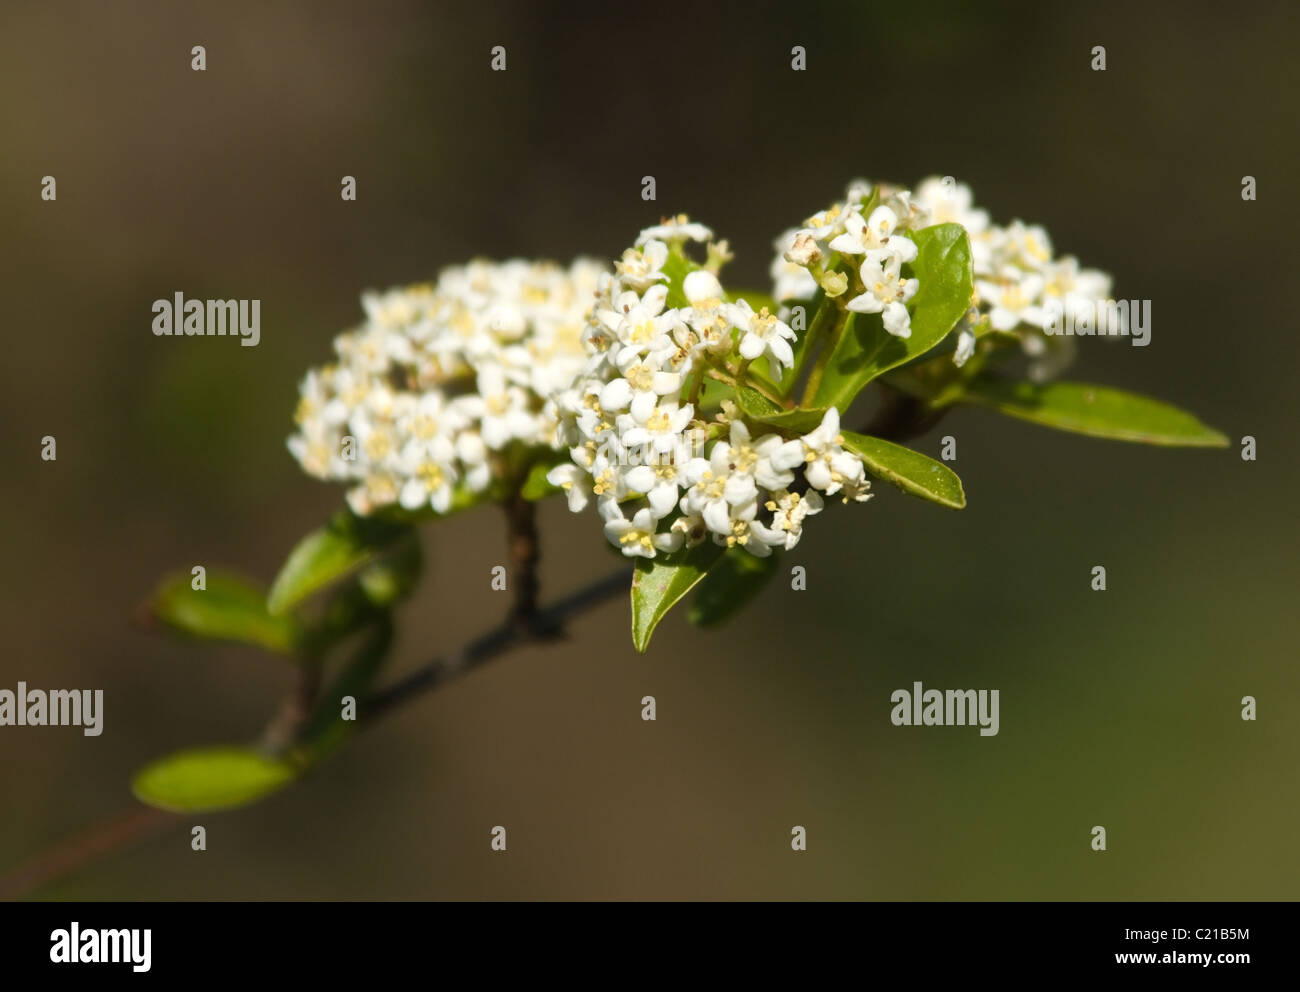 Viburnum at Raulston Arboretum, North Carolina State University, Raleigh, NC, USA Stock Photo